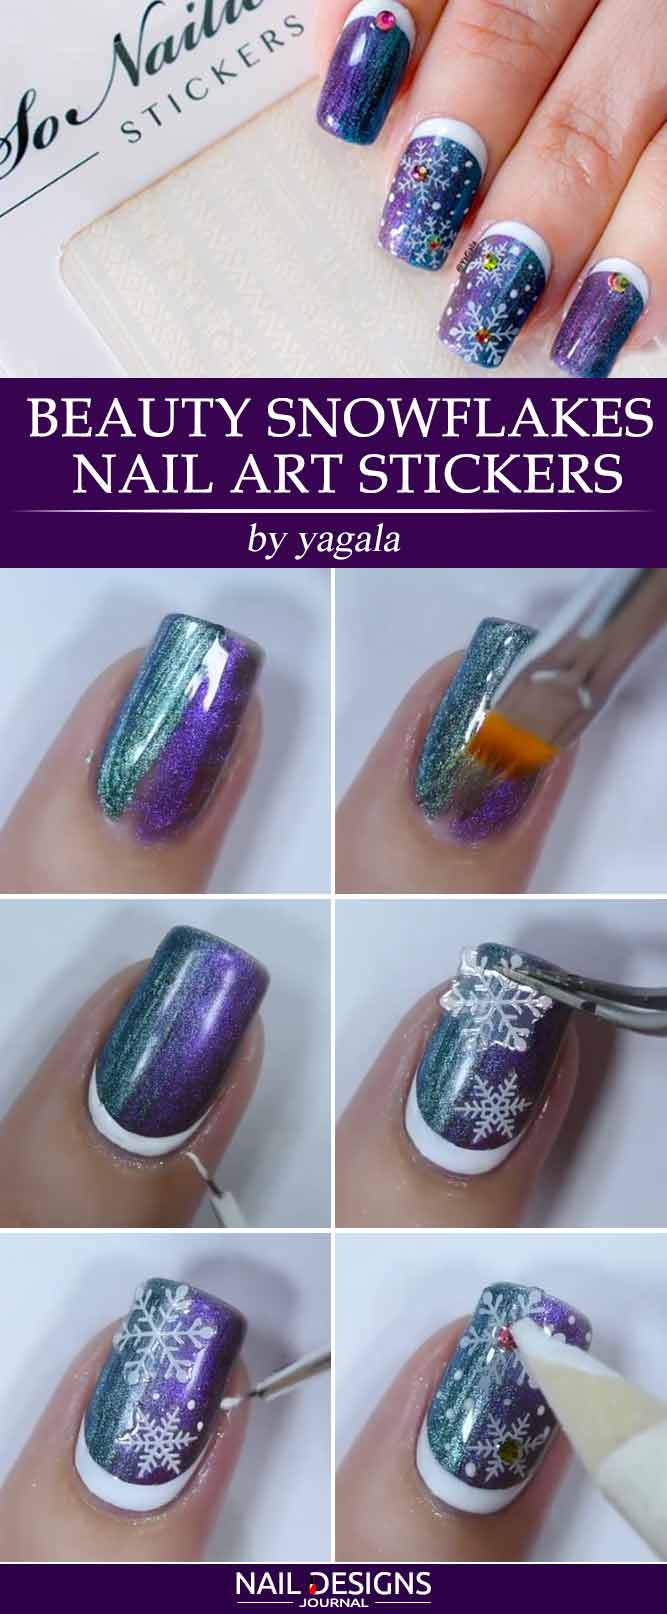 Beauty Snowflakes Nail Art Stickers